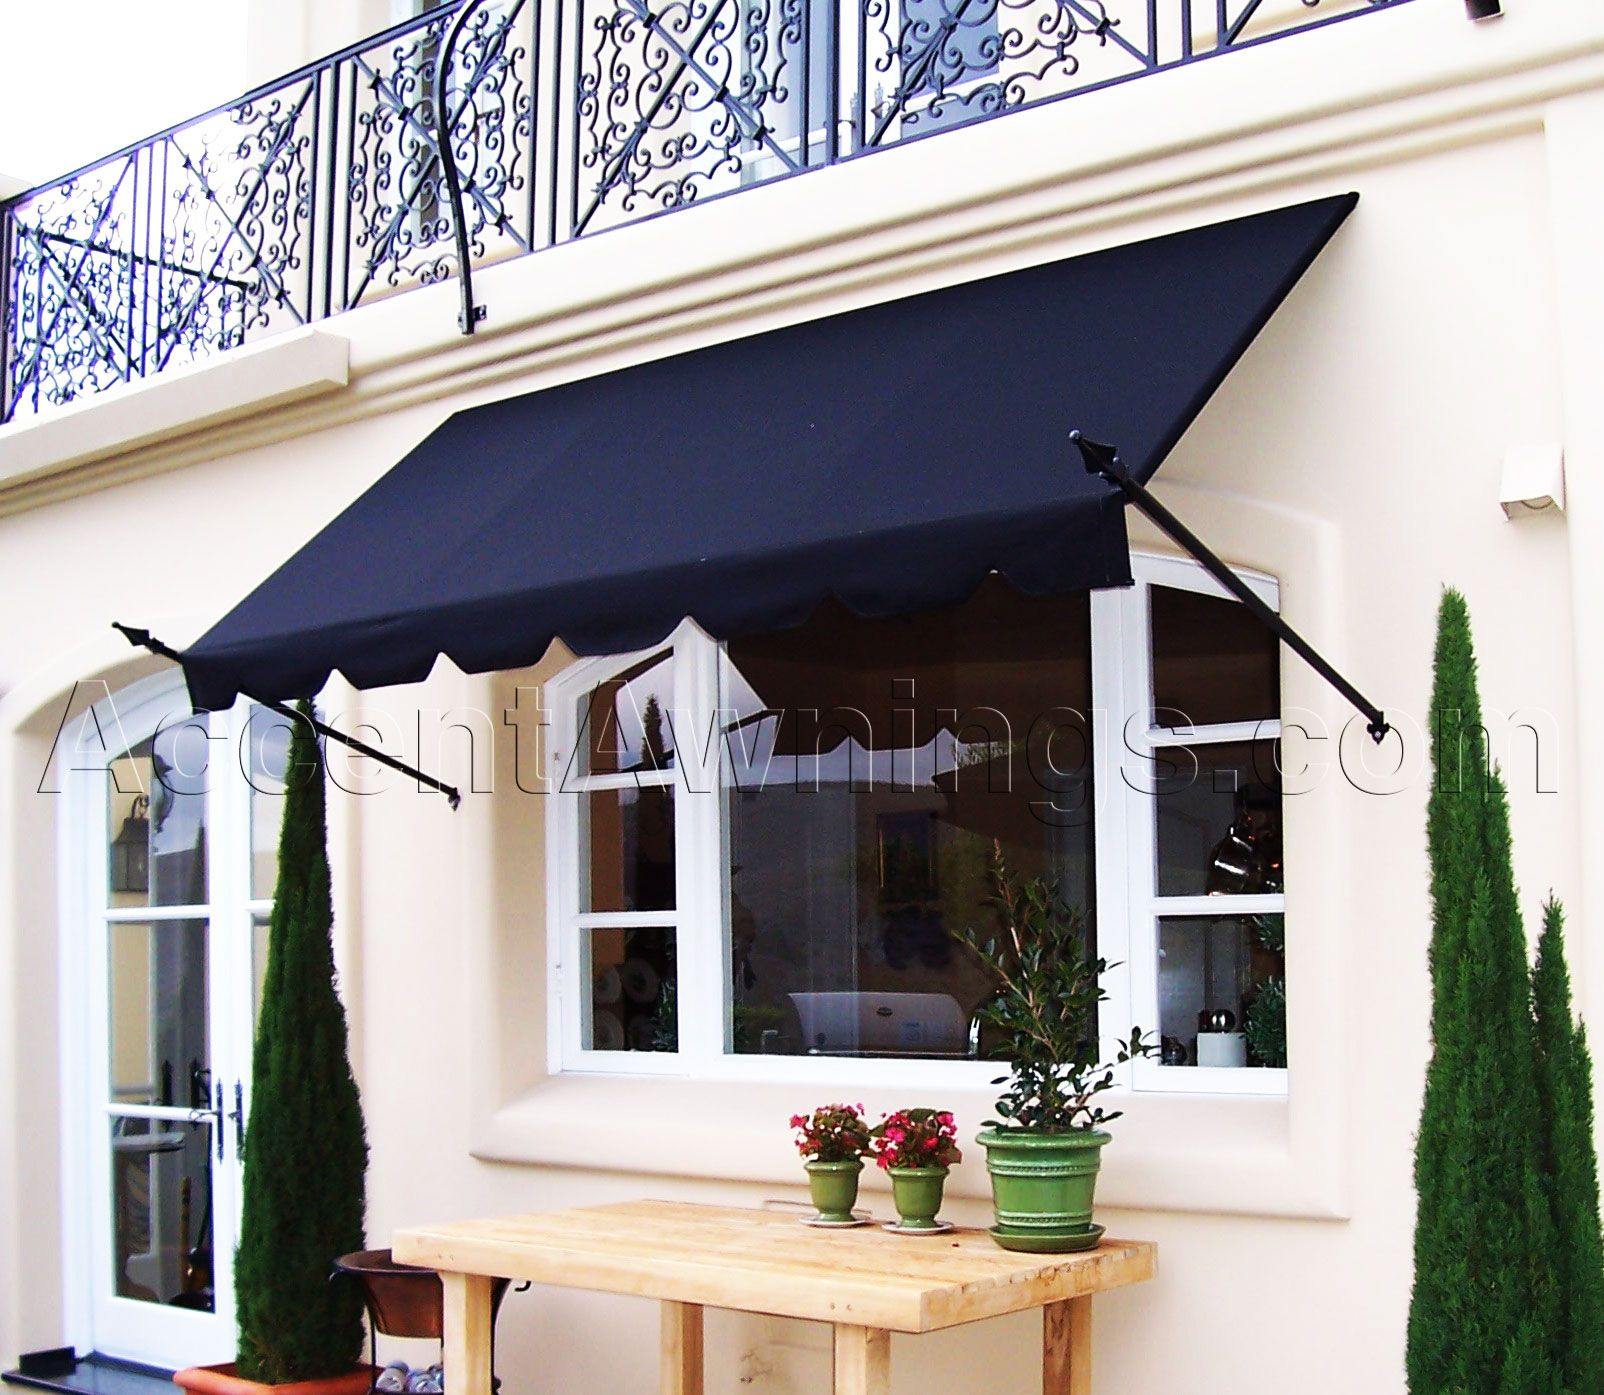 Pin By Sheila On Windows House Awnings Window Awnings